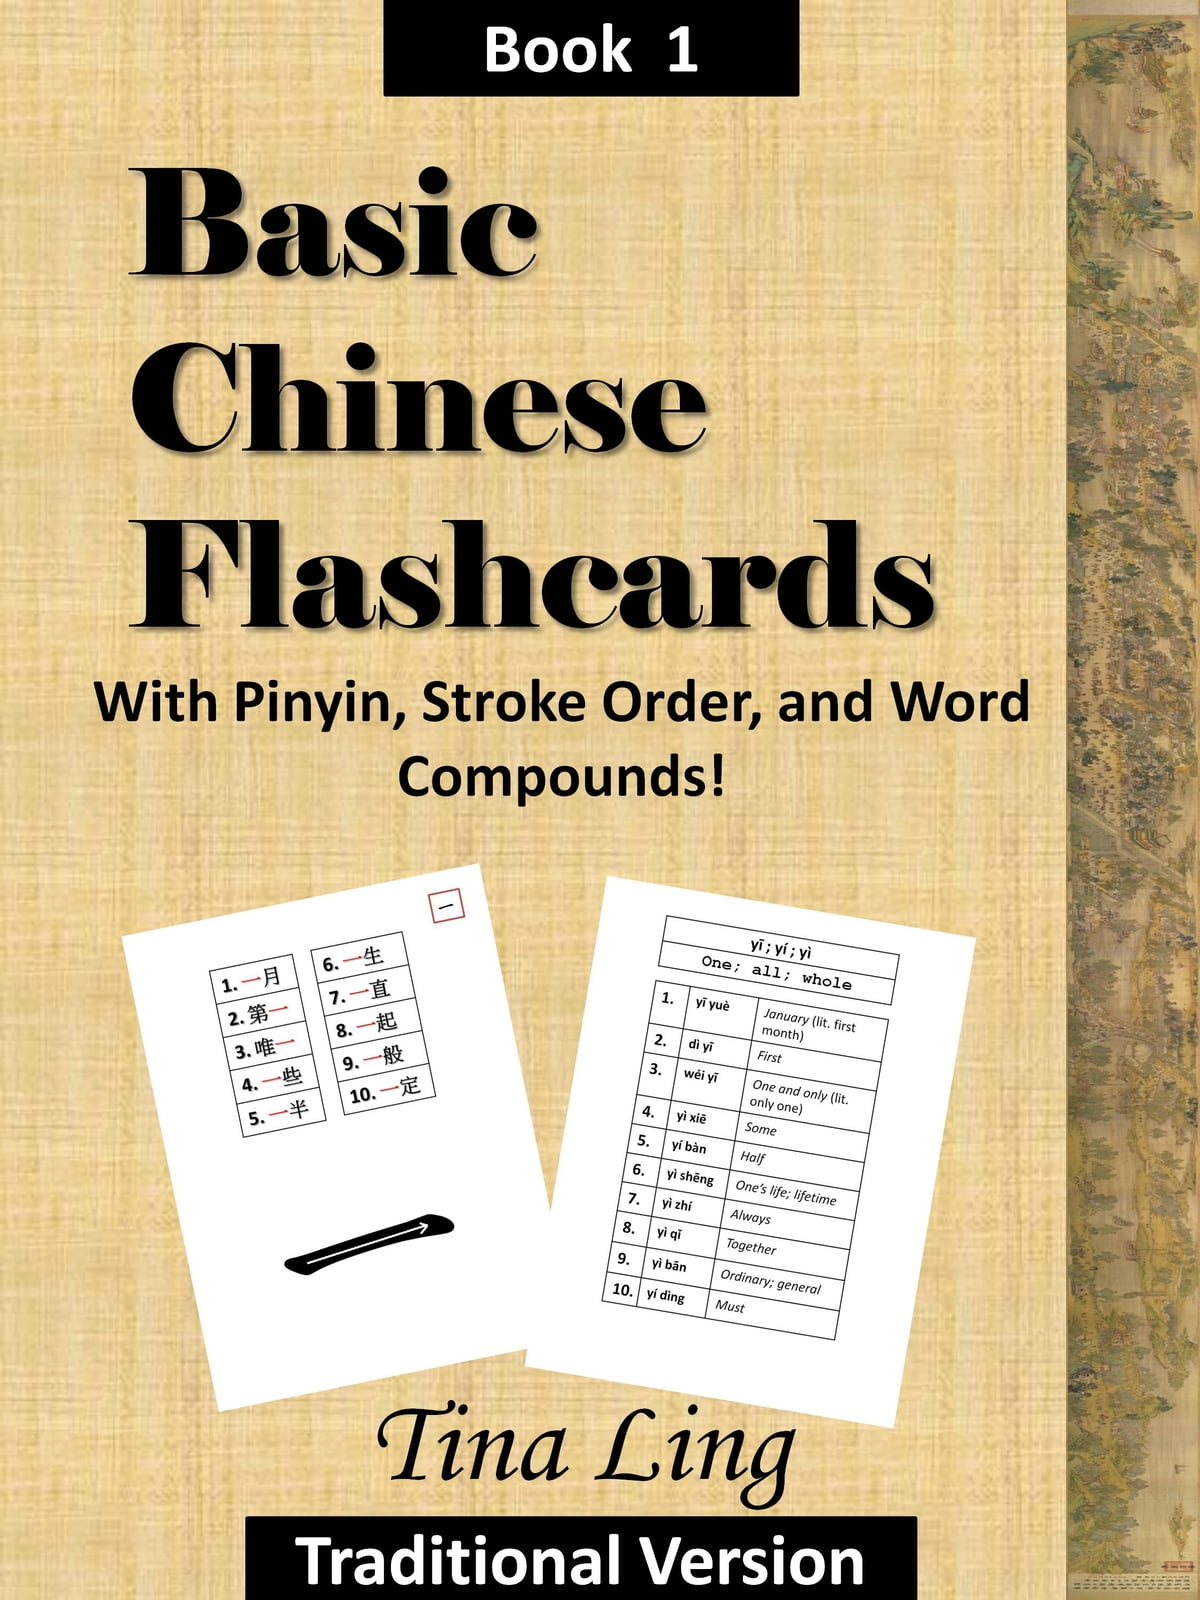 Basic Chinese Flash Cards With Stroke Order Pinyin And